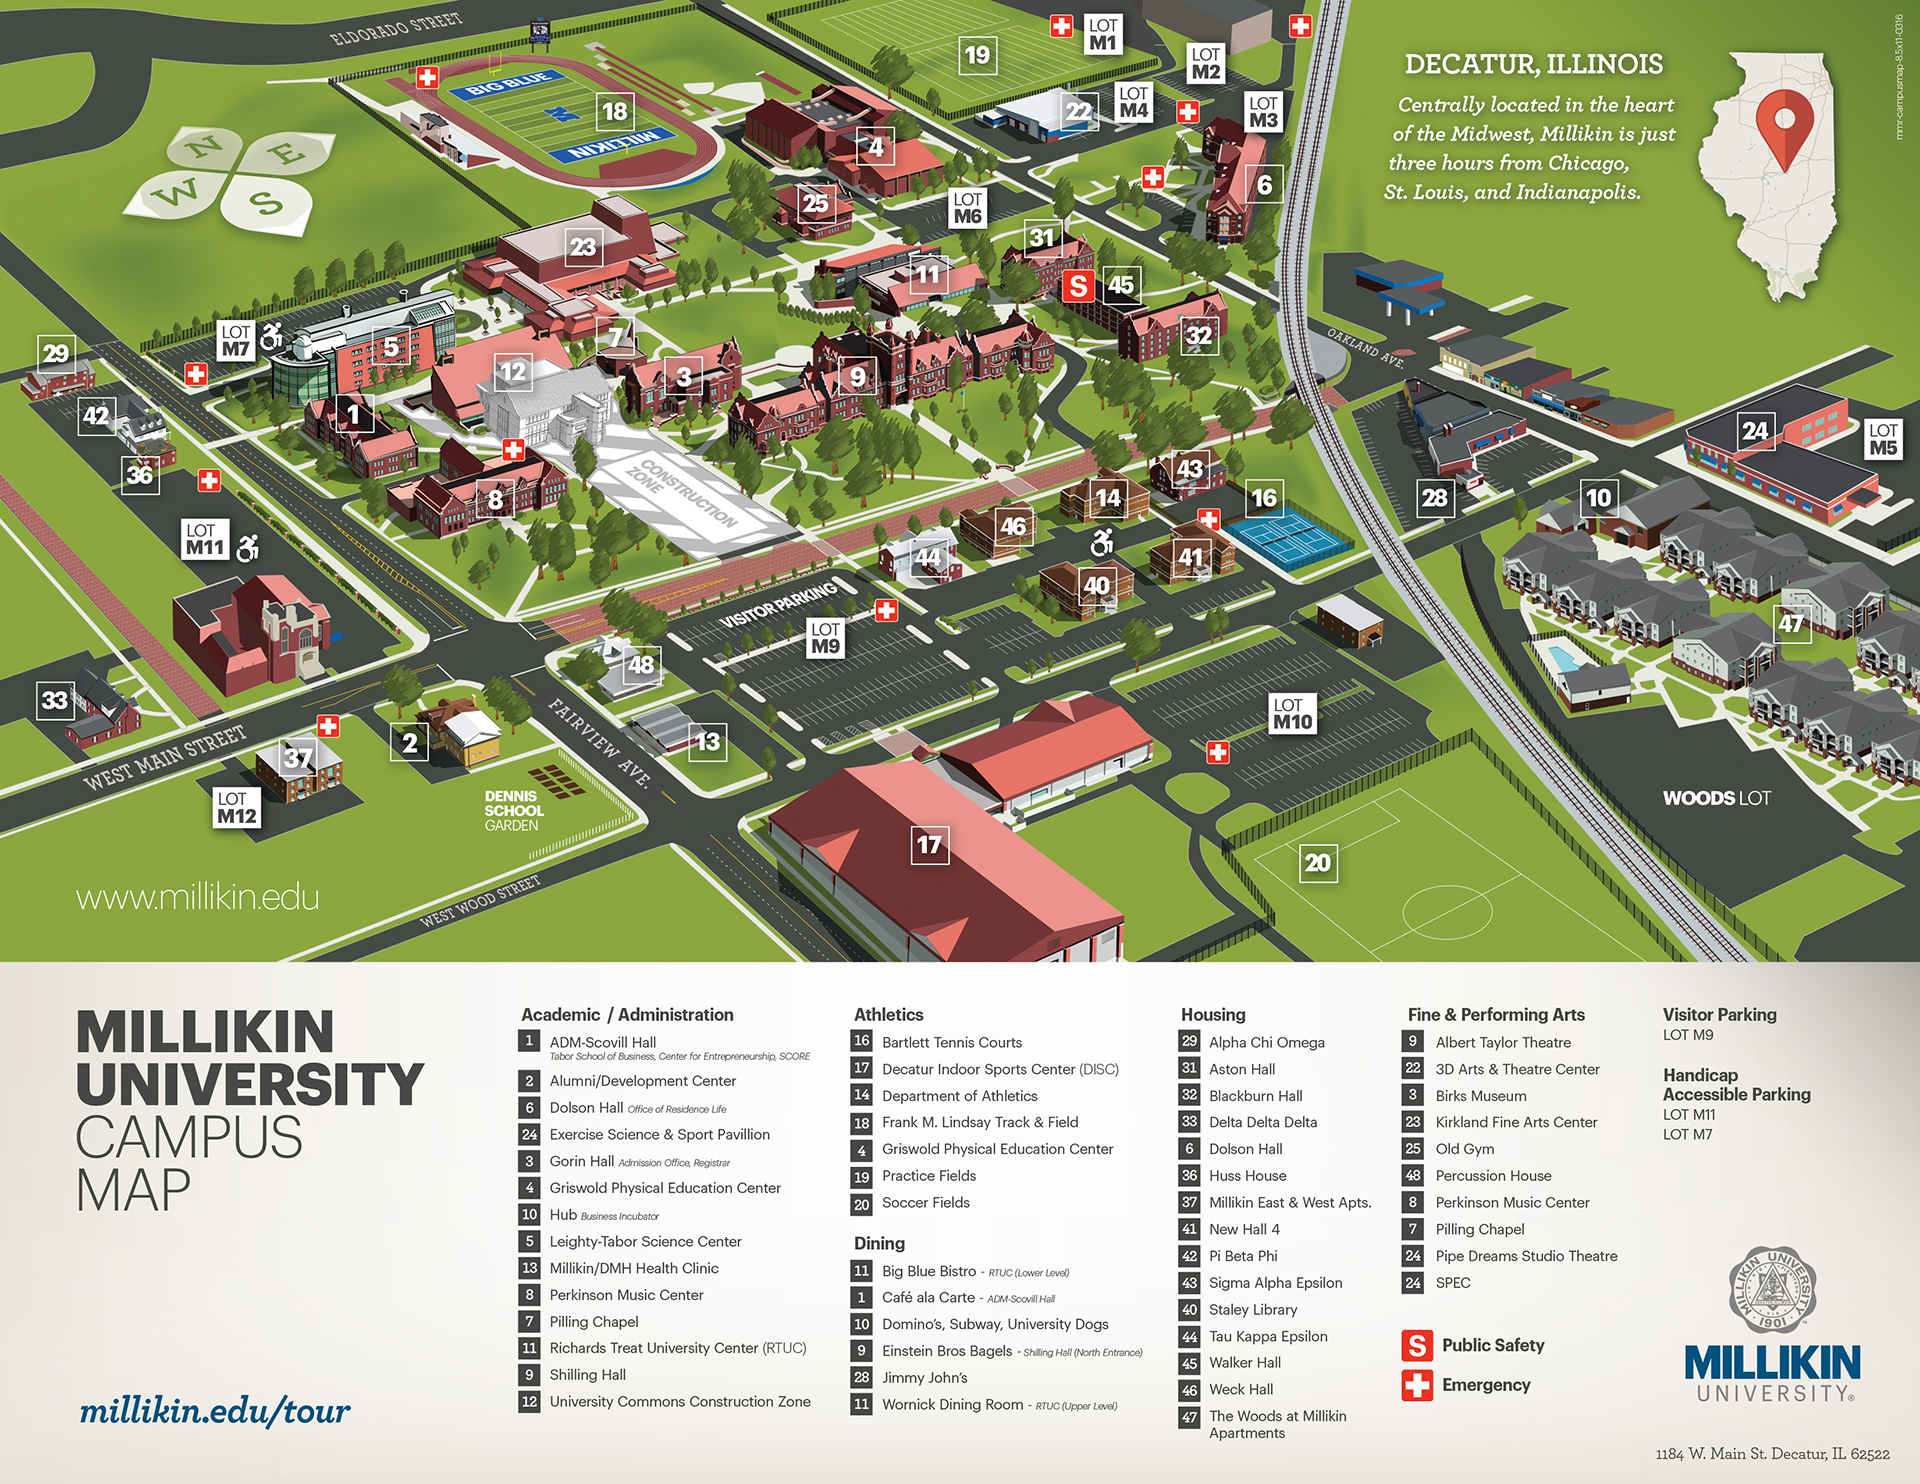 Millikin University Campus Map